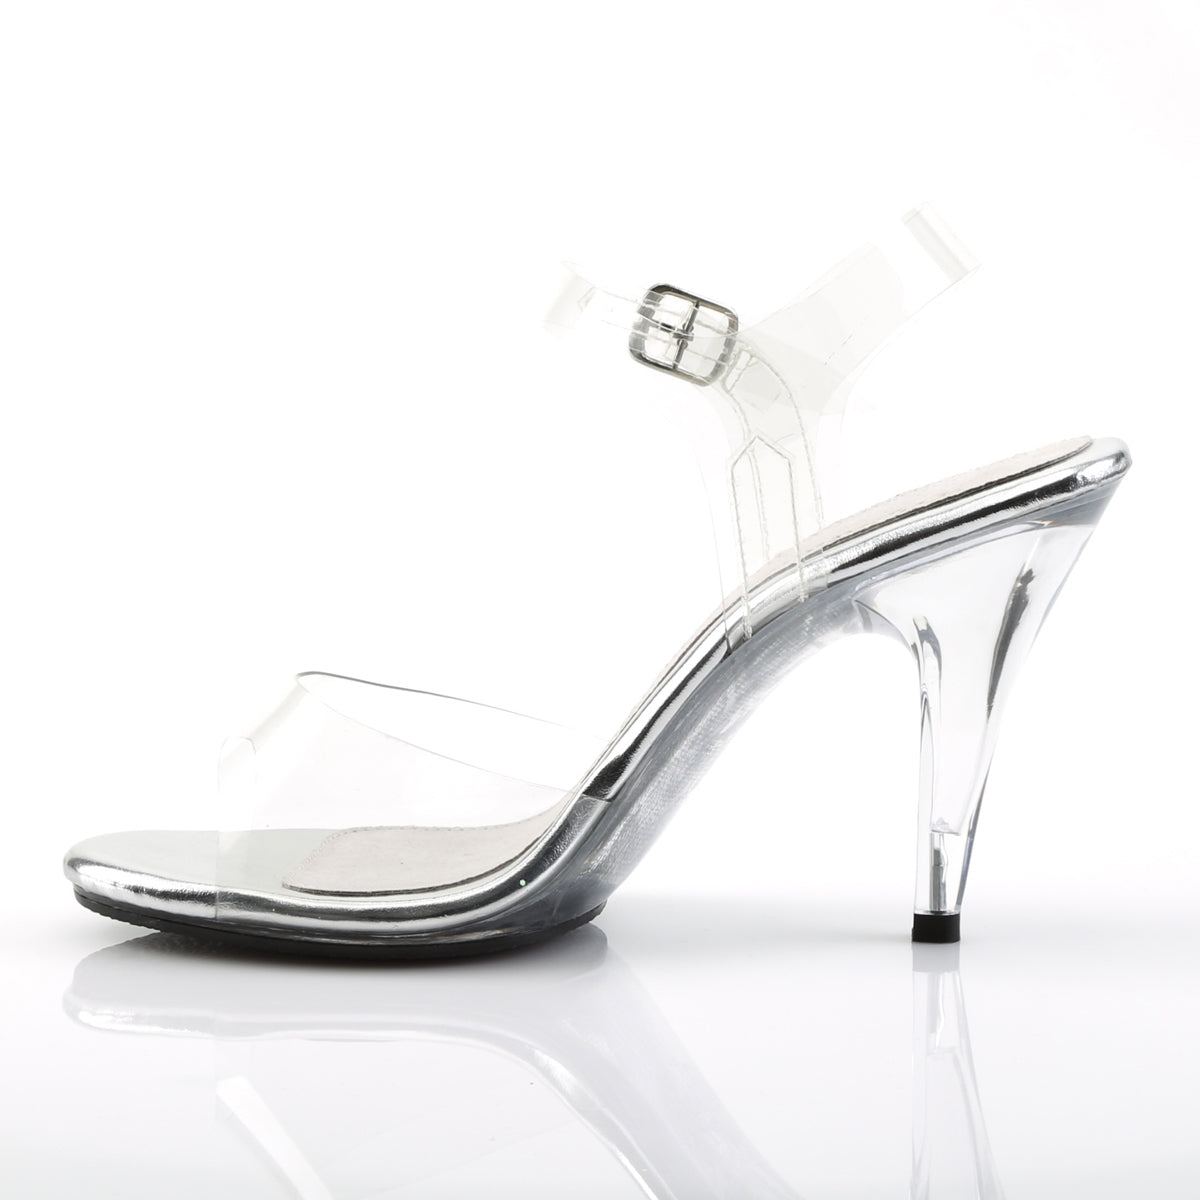 d30973947db CARESS-408 Fabulicious Sexy Shoes 4 Inch Stiletto Heel Ankle Strap ...